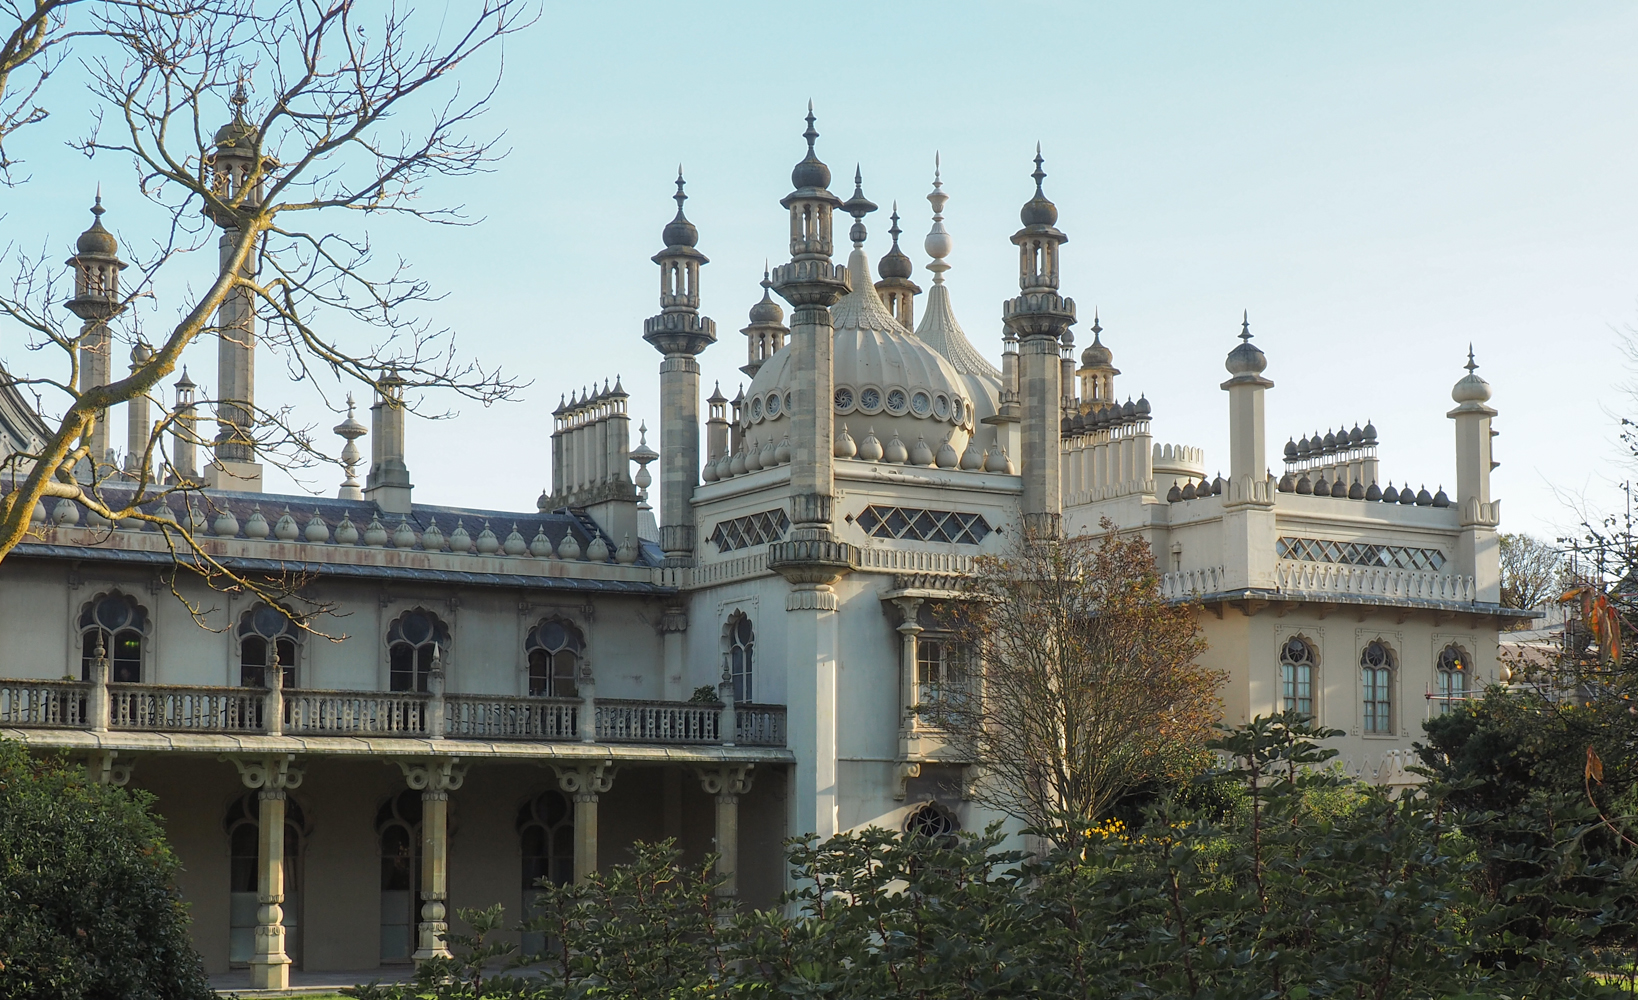 Places to visit in Brighton Royal Pavilion